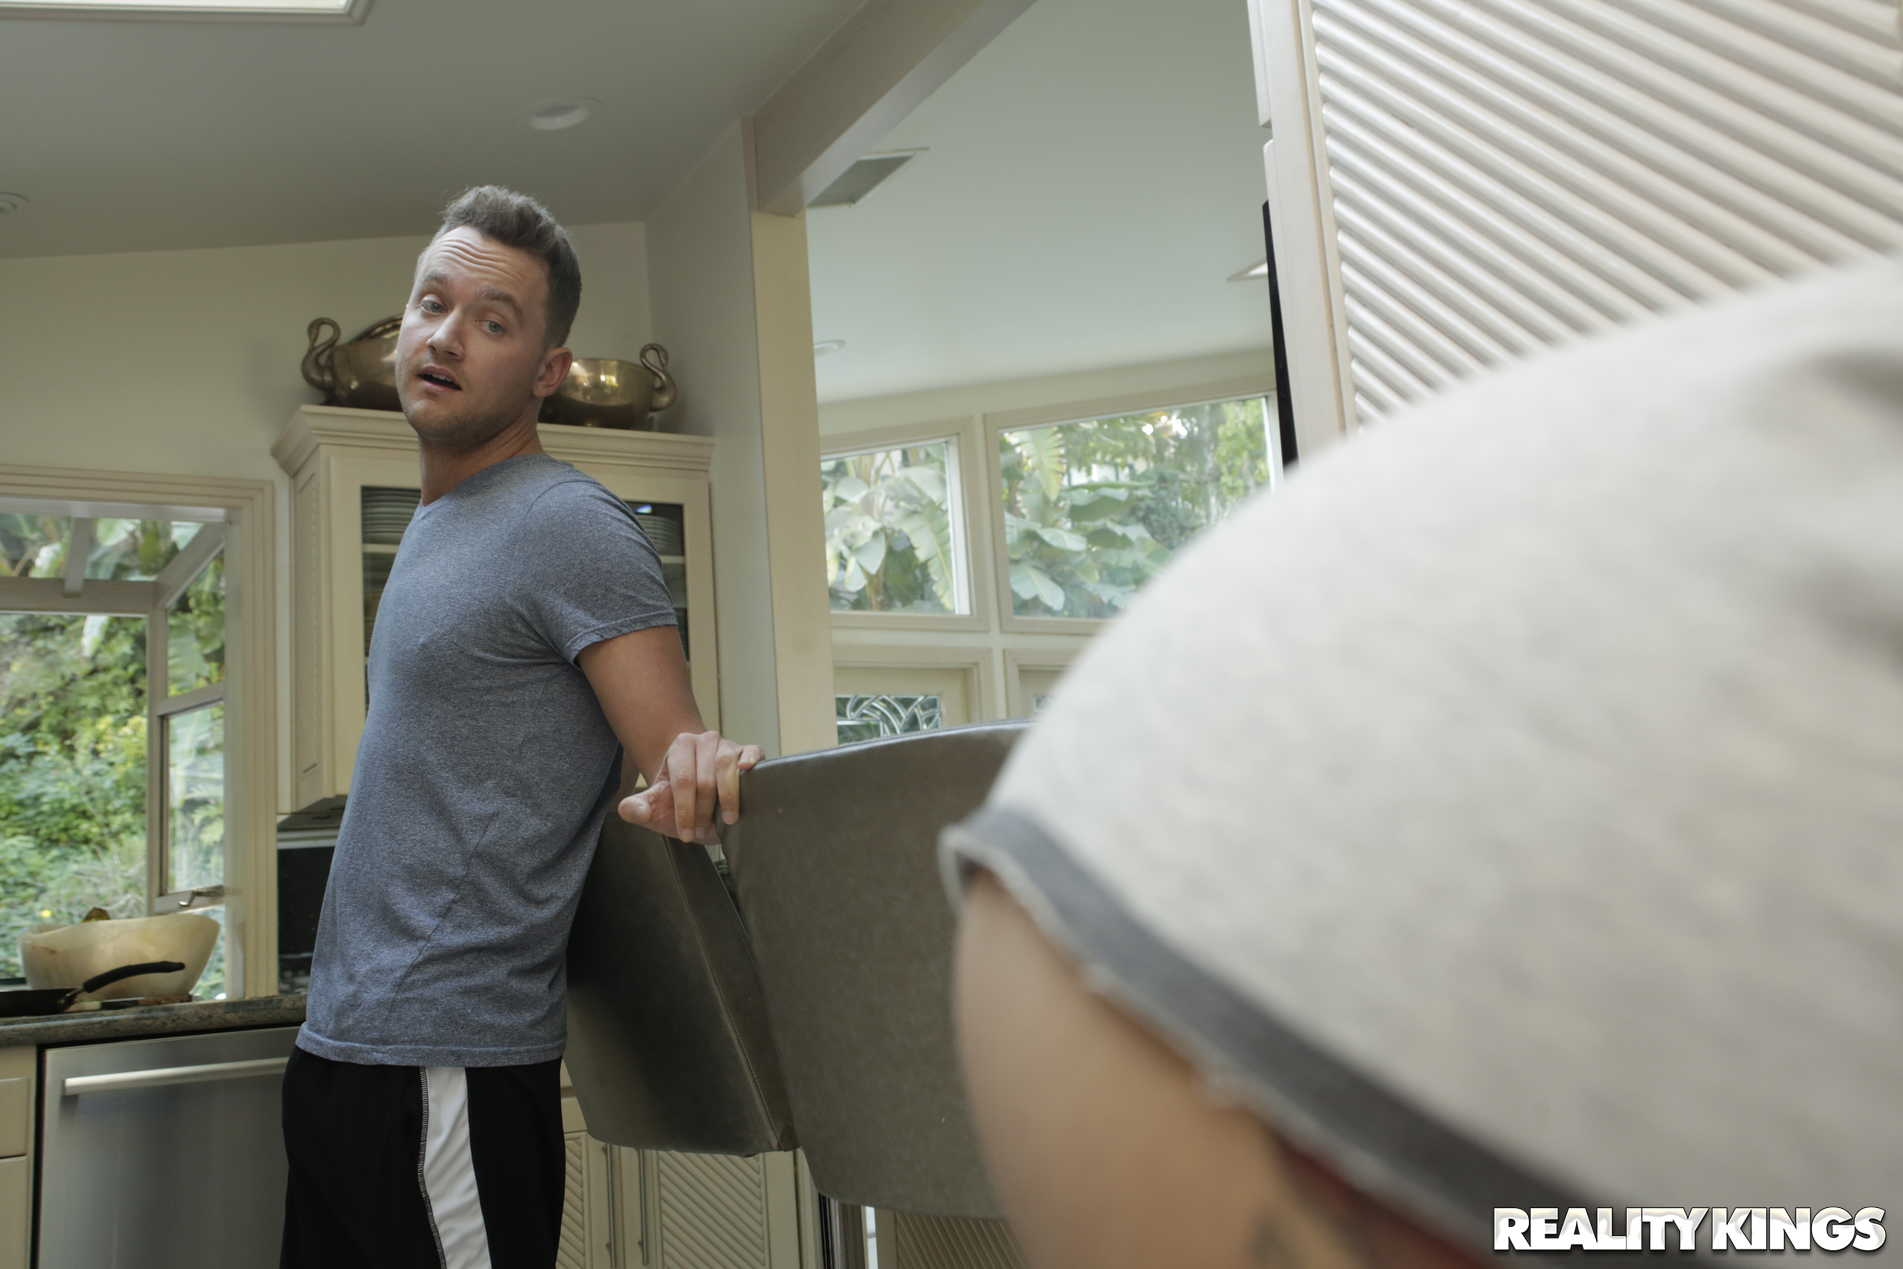 Reality Kings 'On The Run 2' starring Cassidy Banks (Photo 42)